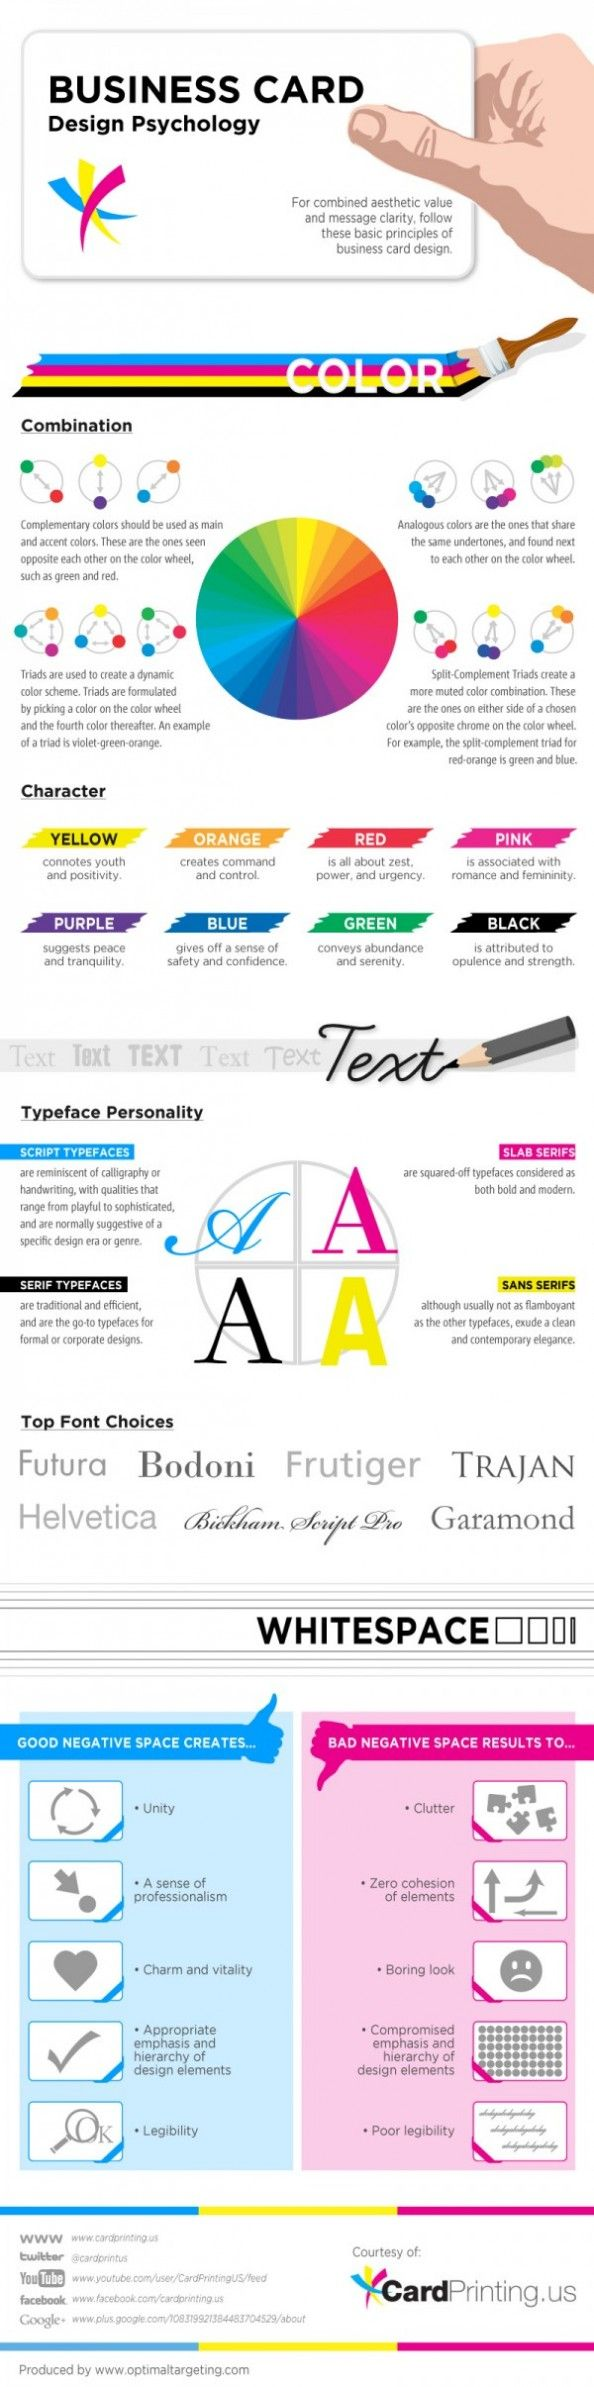 Business Card Design Psychology #Infographic. #design #businesscards #marketing #colors #corporate #branding